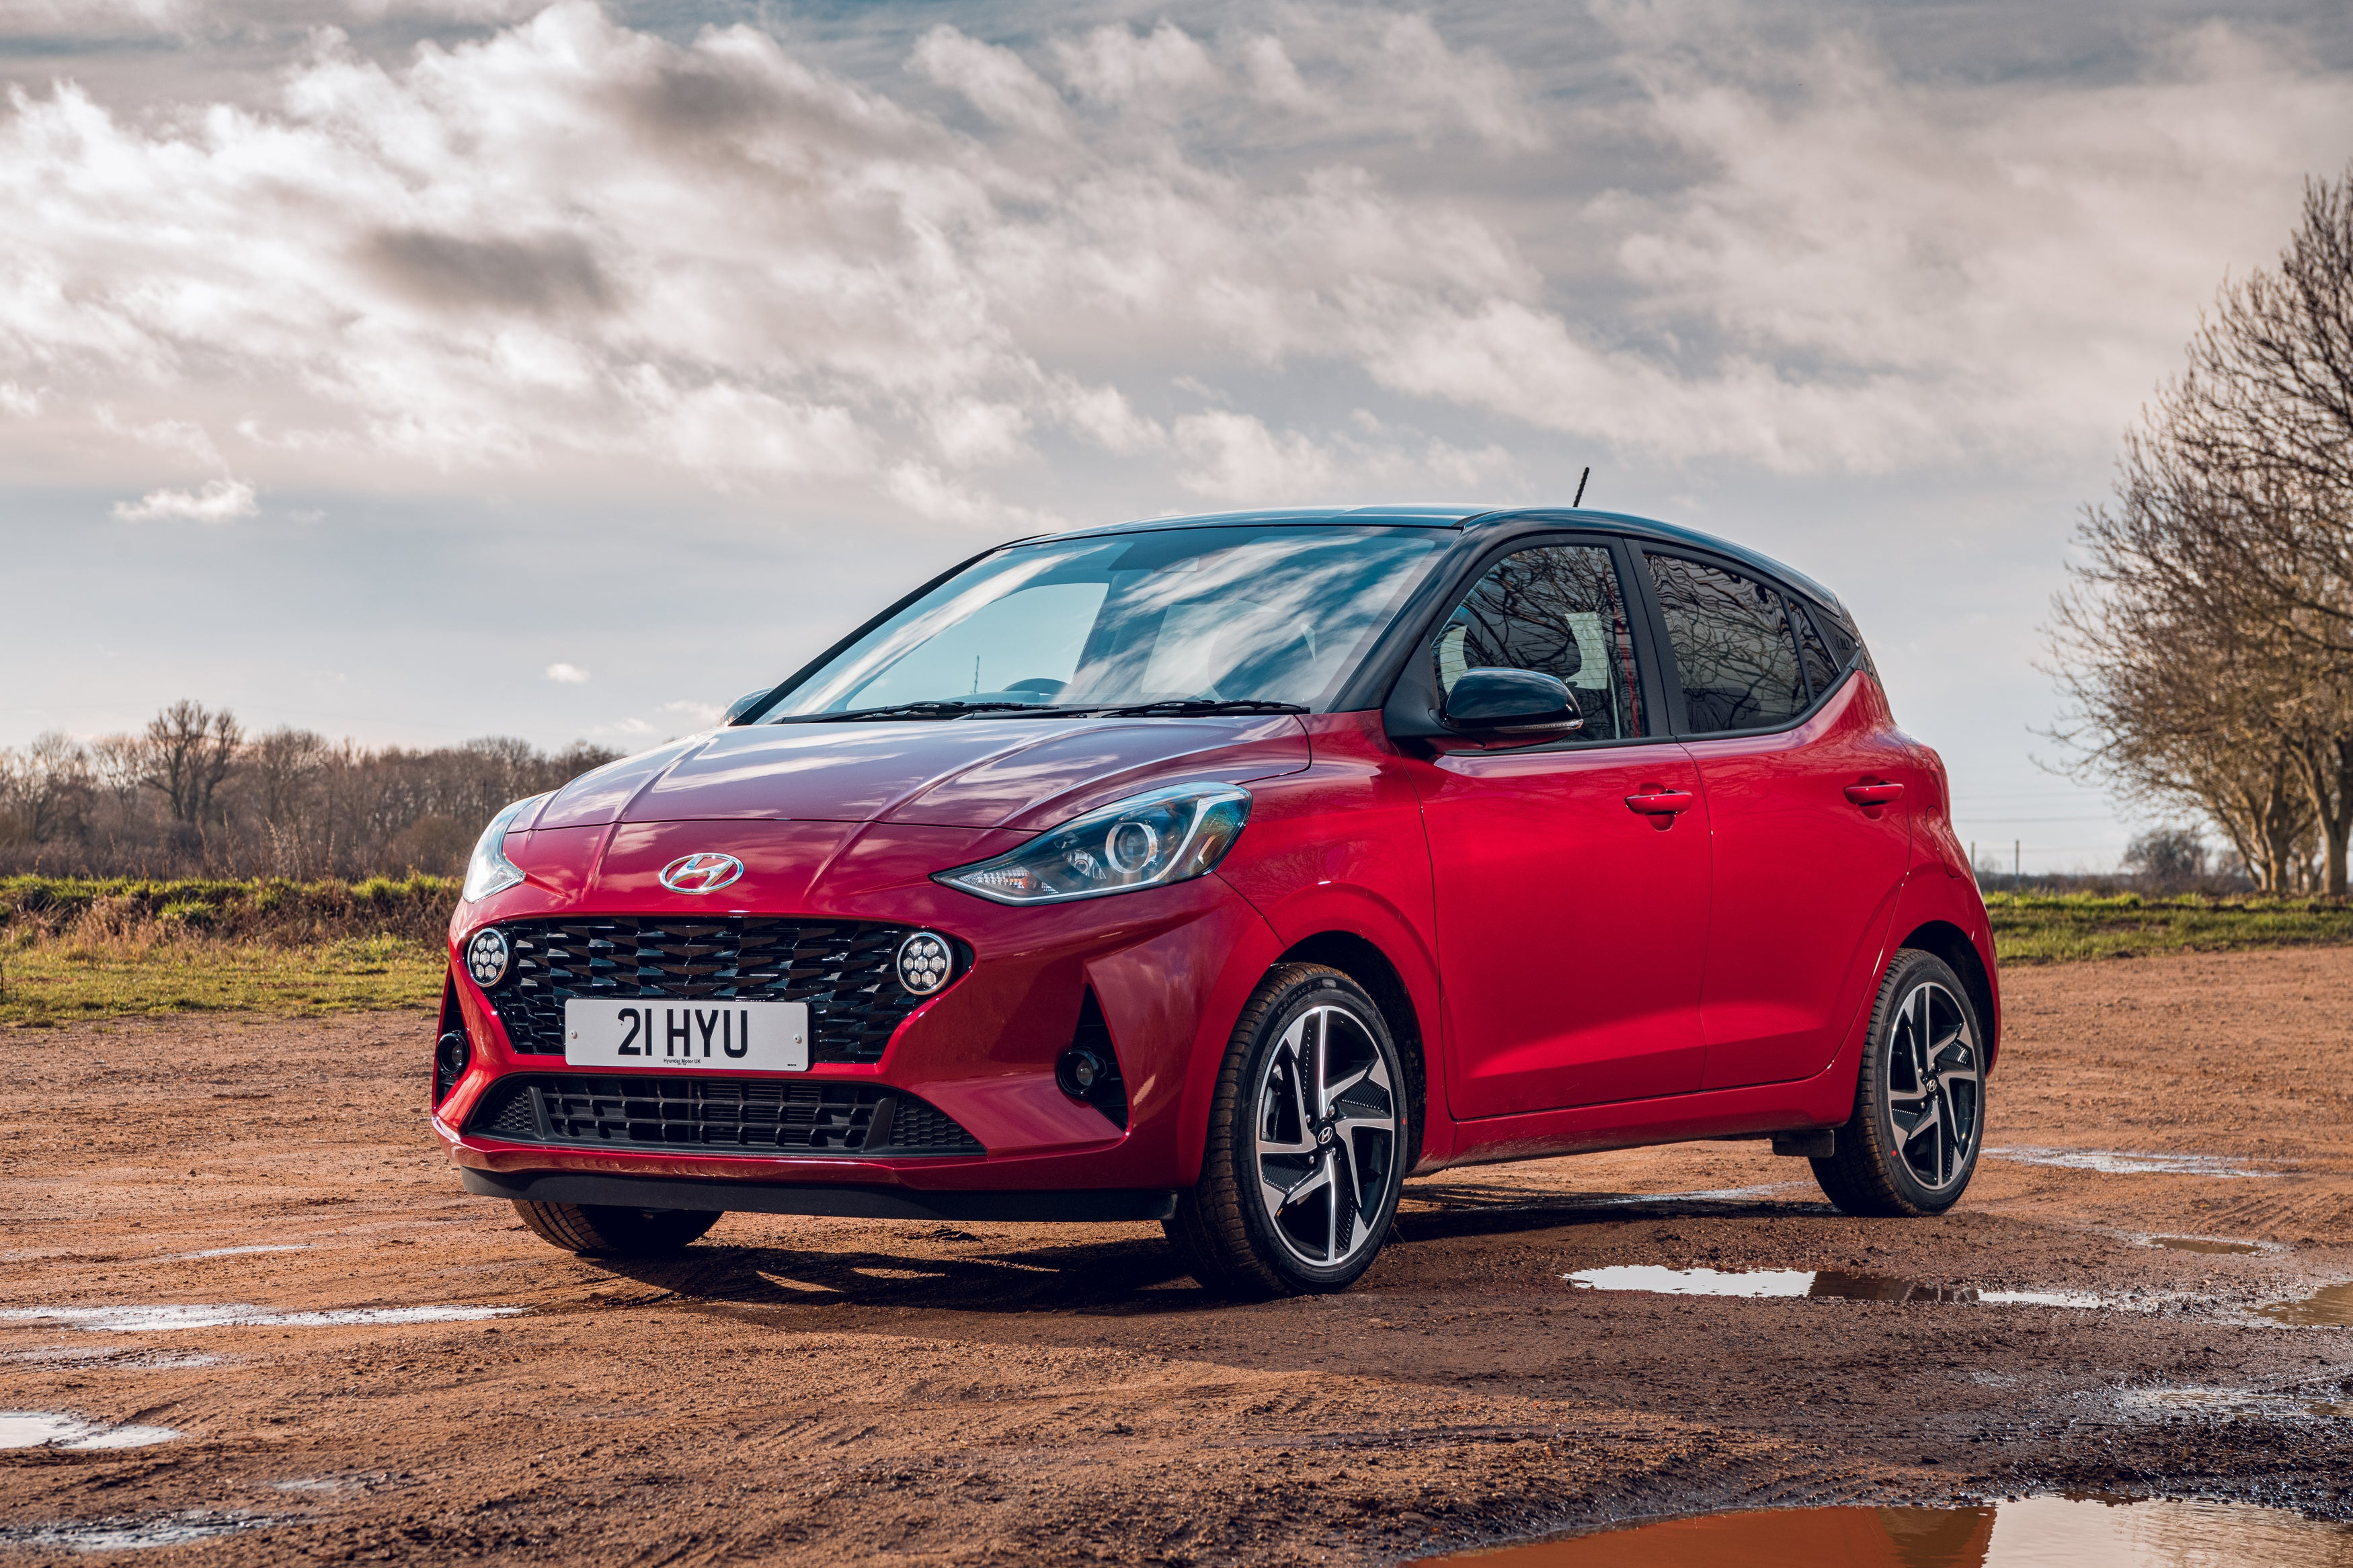 The front view of Hyundai i10.